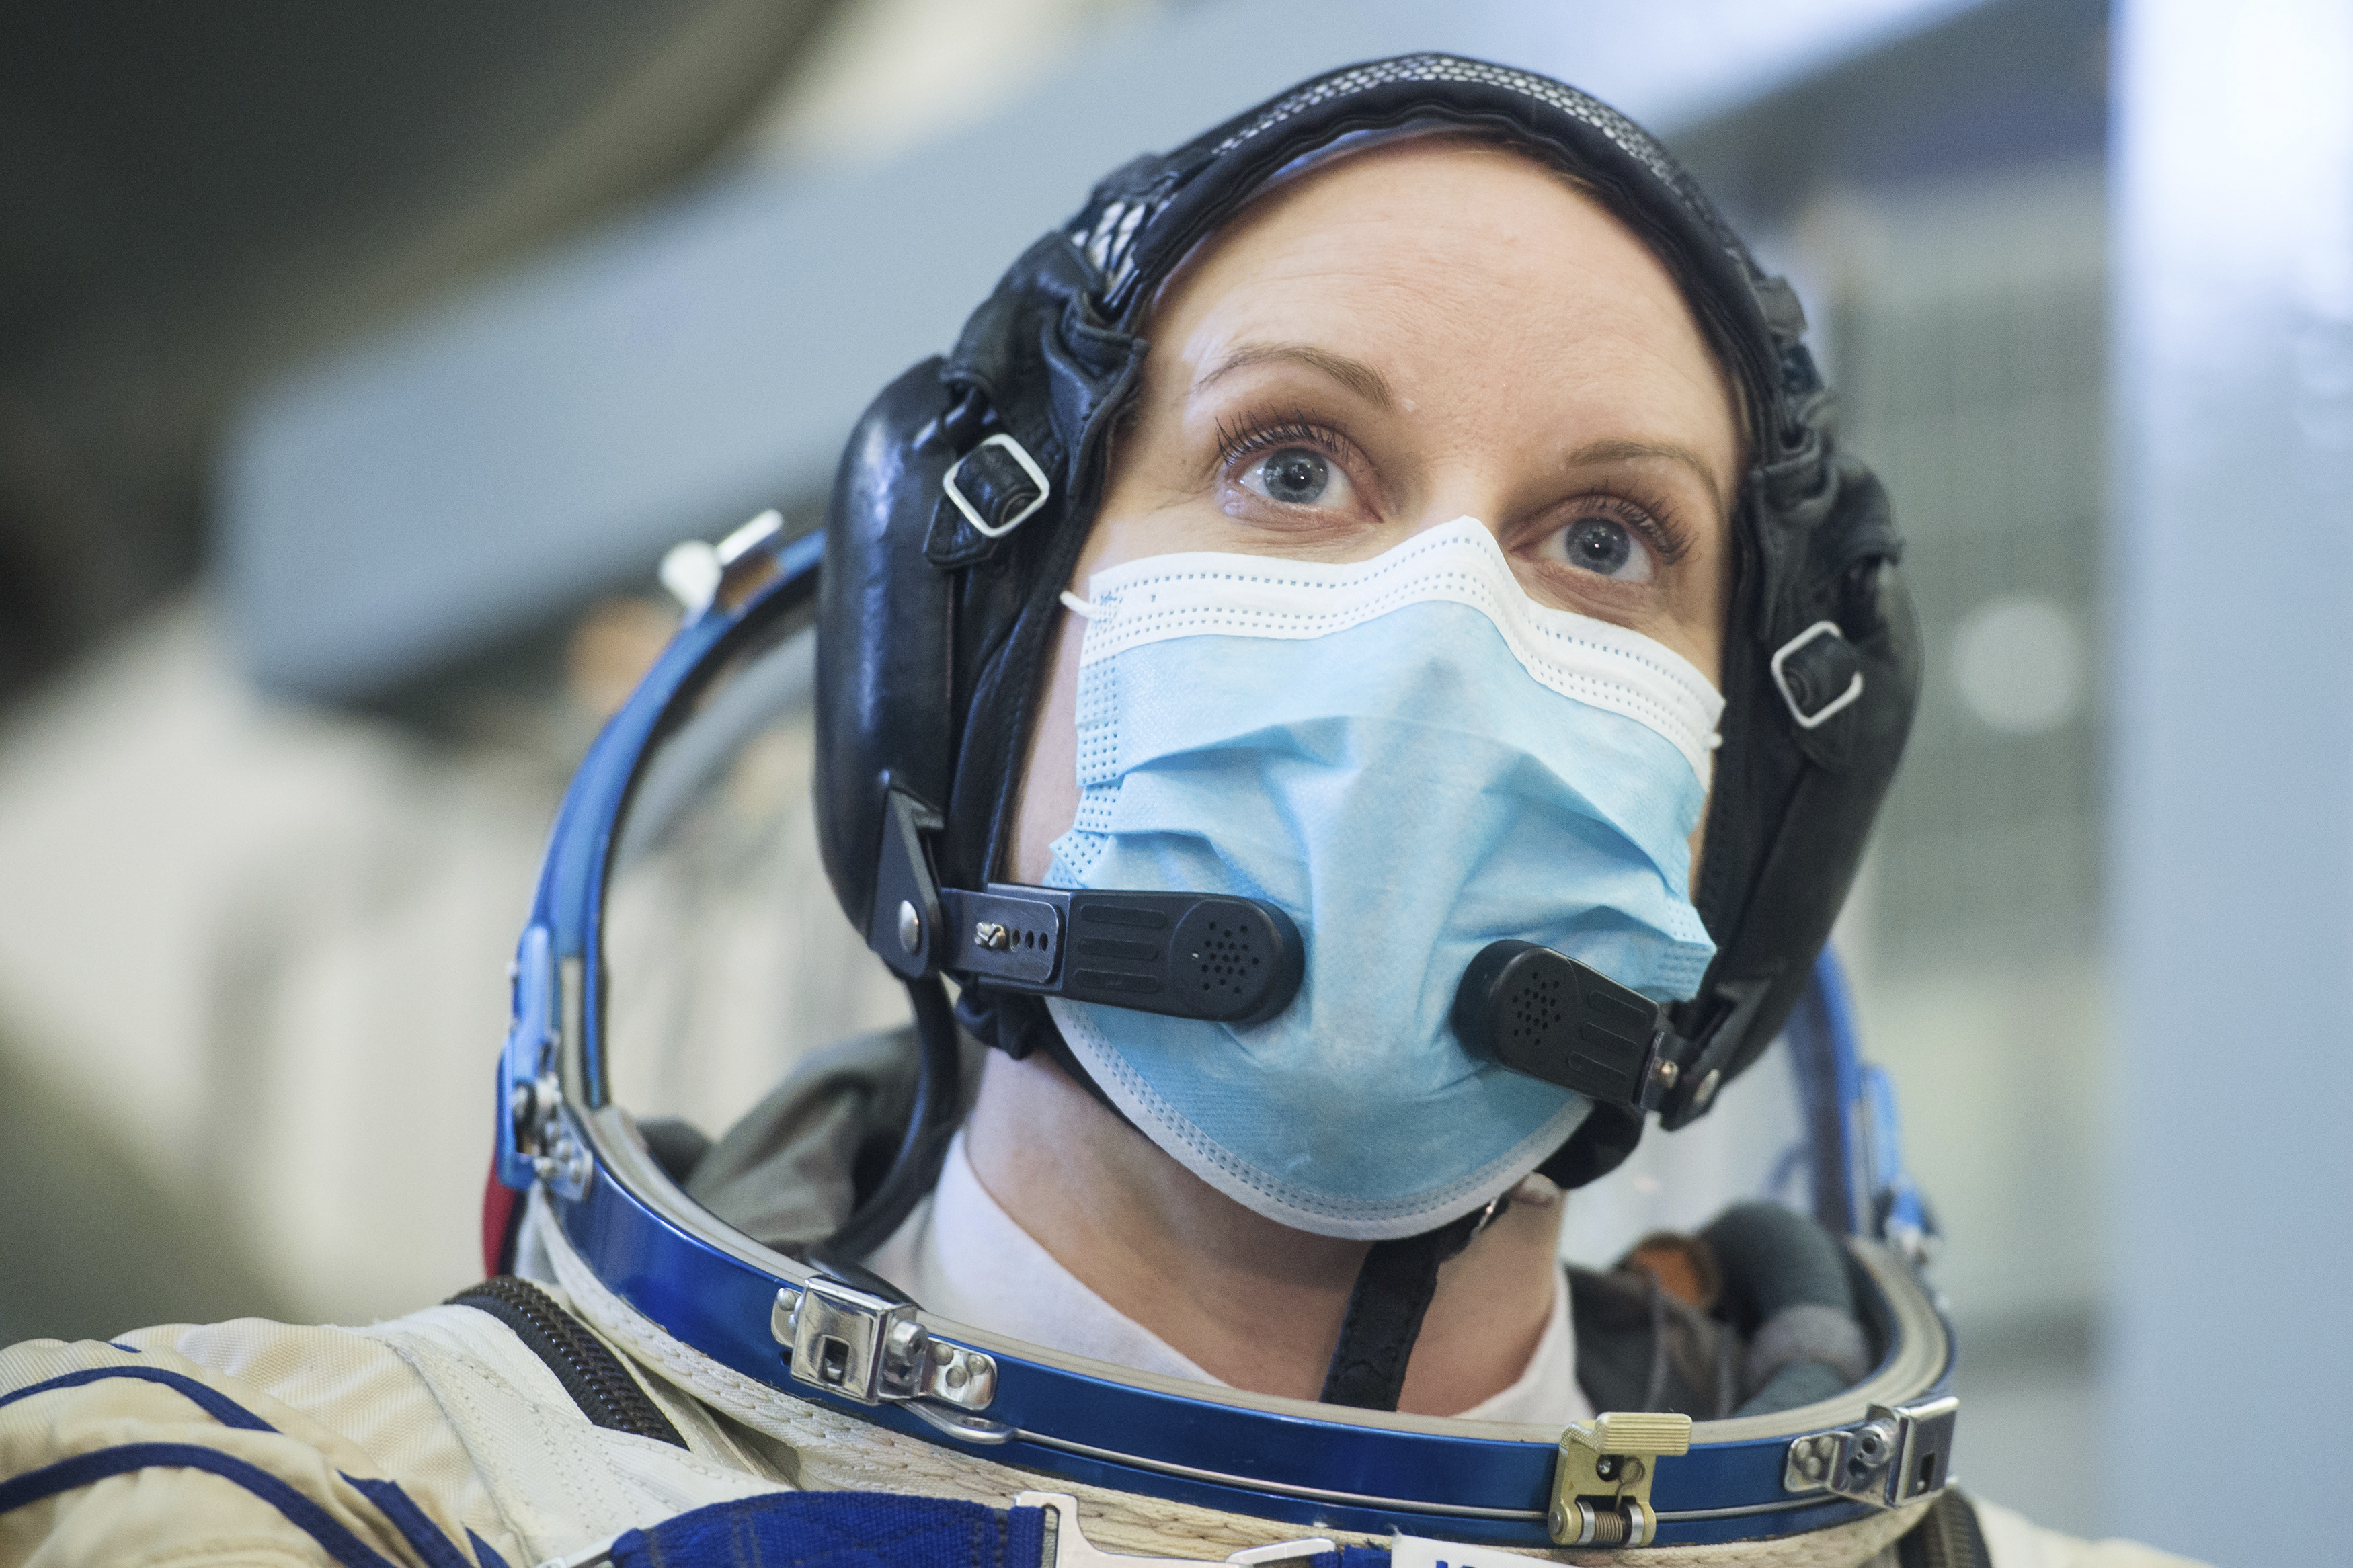 In this photo released by the Russian Space Agency Roscosmos, International Space Station (ISS) Expedition 64th crew member, U.S. astronaut Kathleen Rubins wearing a face mask to protect against coronavirus looks on during a final preflight practical examination in a mock-up of a Soyuz space craft at the Gagarin Cosmonaut Training Centre in Star City, outside Moscow, Russia Wednesday, Sept. 23, 2020. The launch of the Soyuz MS-17 spacecraft from the Baikonur spaceport is scheduled for October 14. (Andrey Shelepin/Roscosmos Space Agency Press Service via AP)